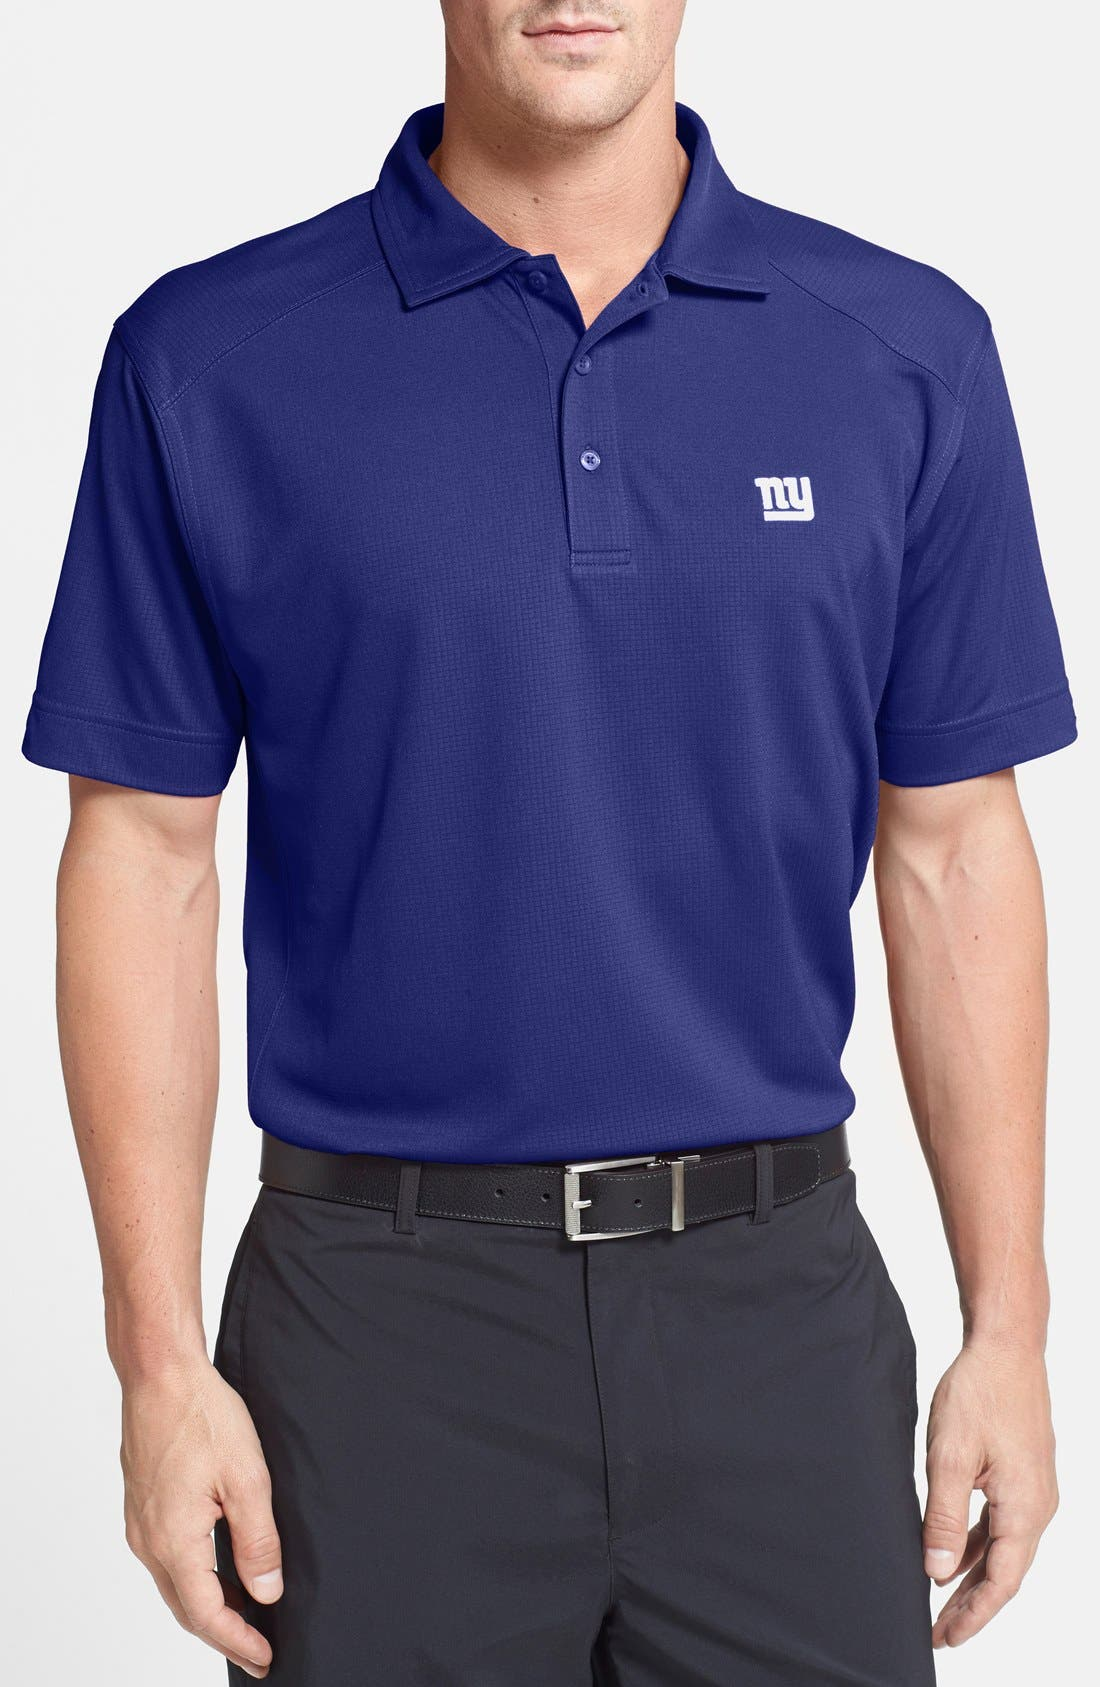 'New York Giants - Genre' DryTec Moisture Wicking Polo,                             Main thumbnail 1, color,                             462